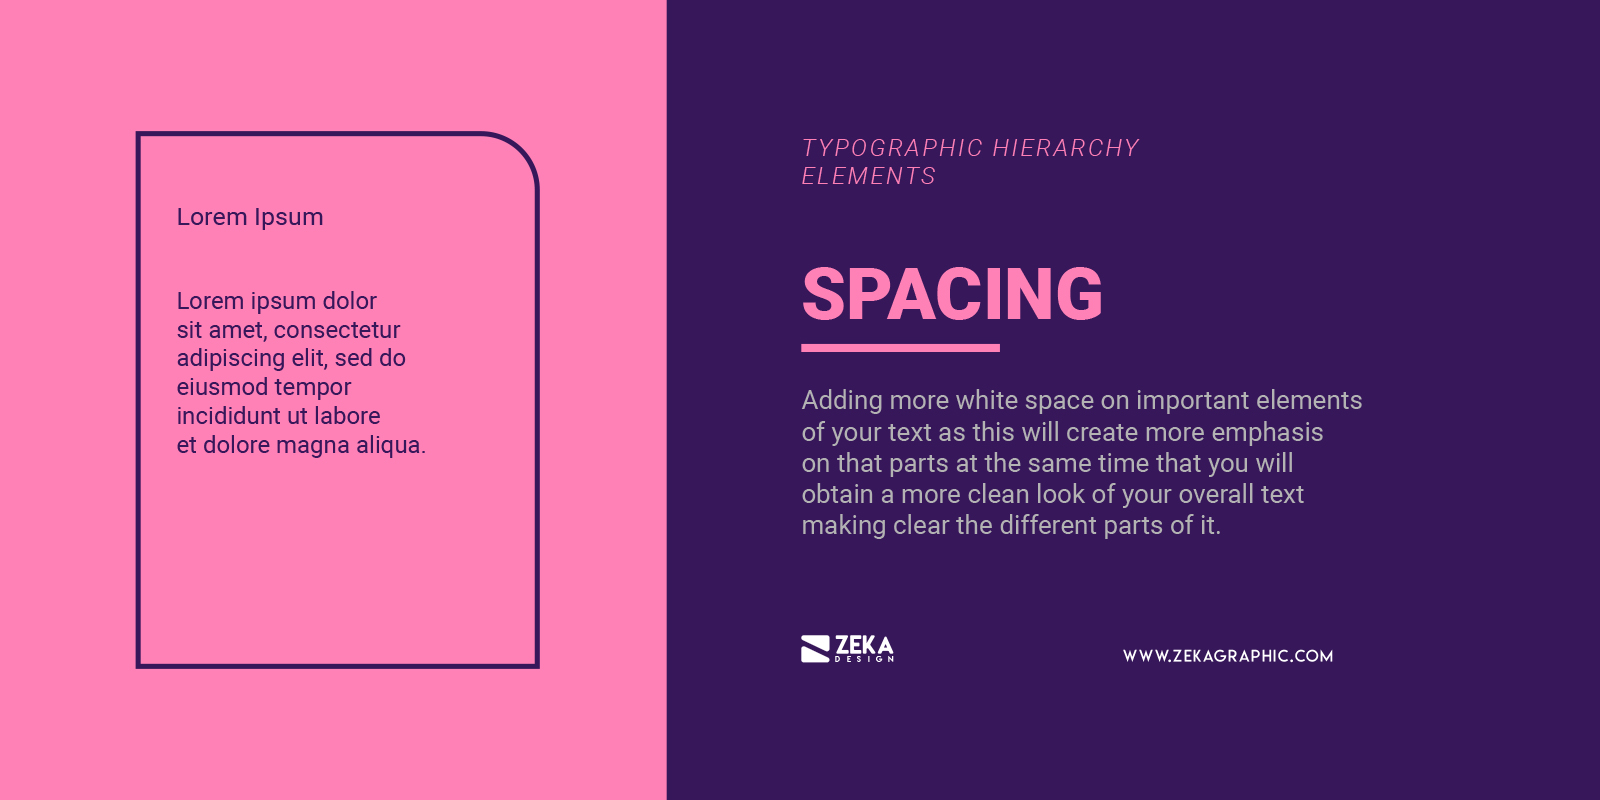 Text Spacing for Typographic Hierarchy in Graphic Design